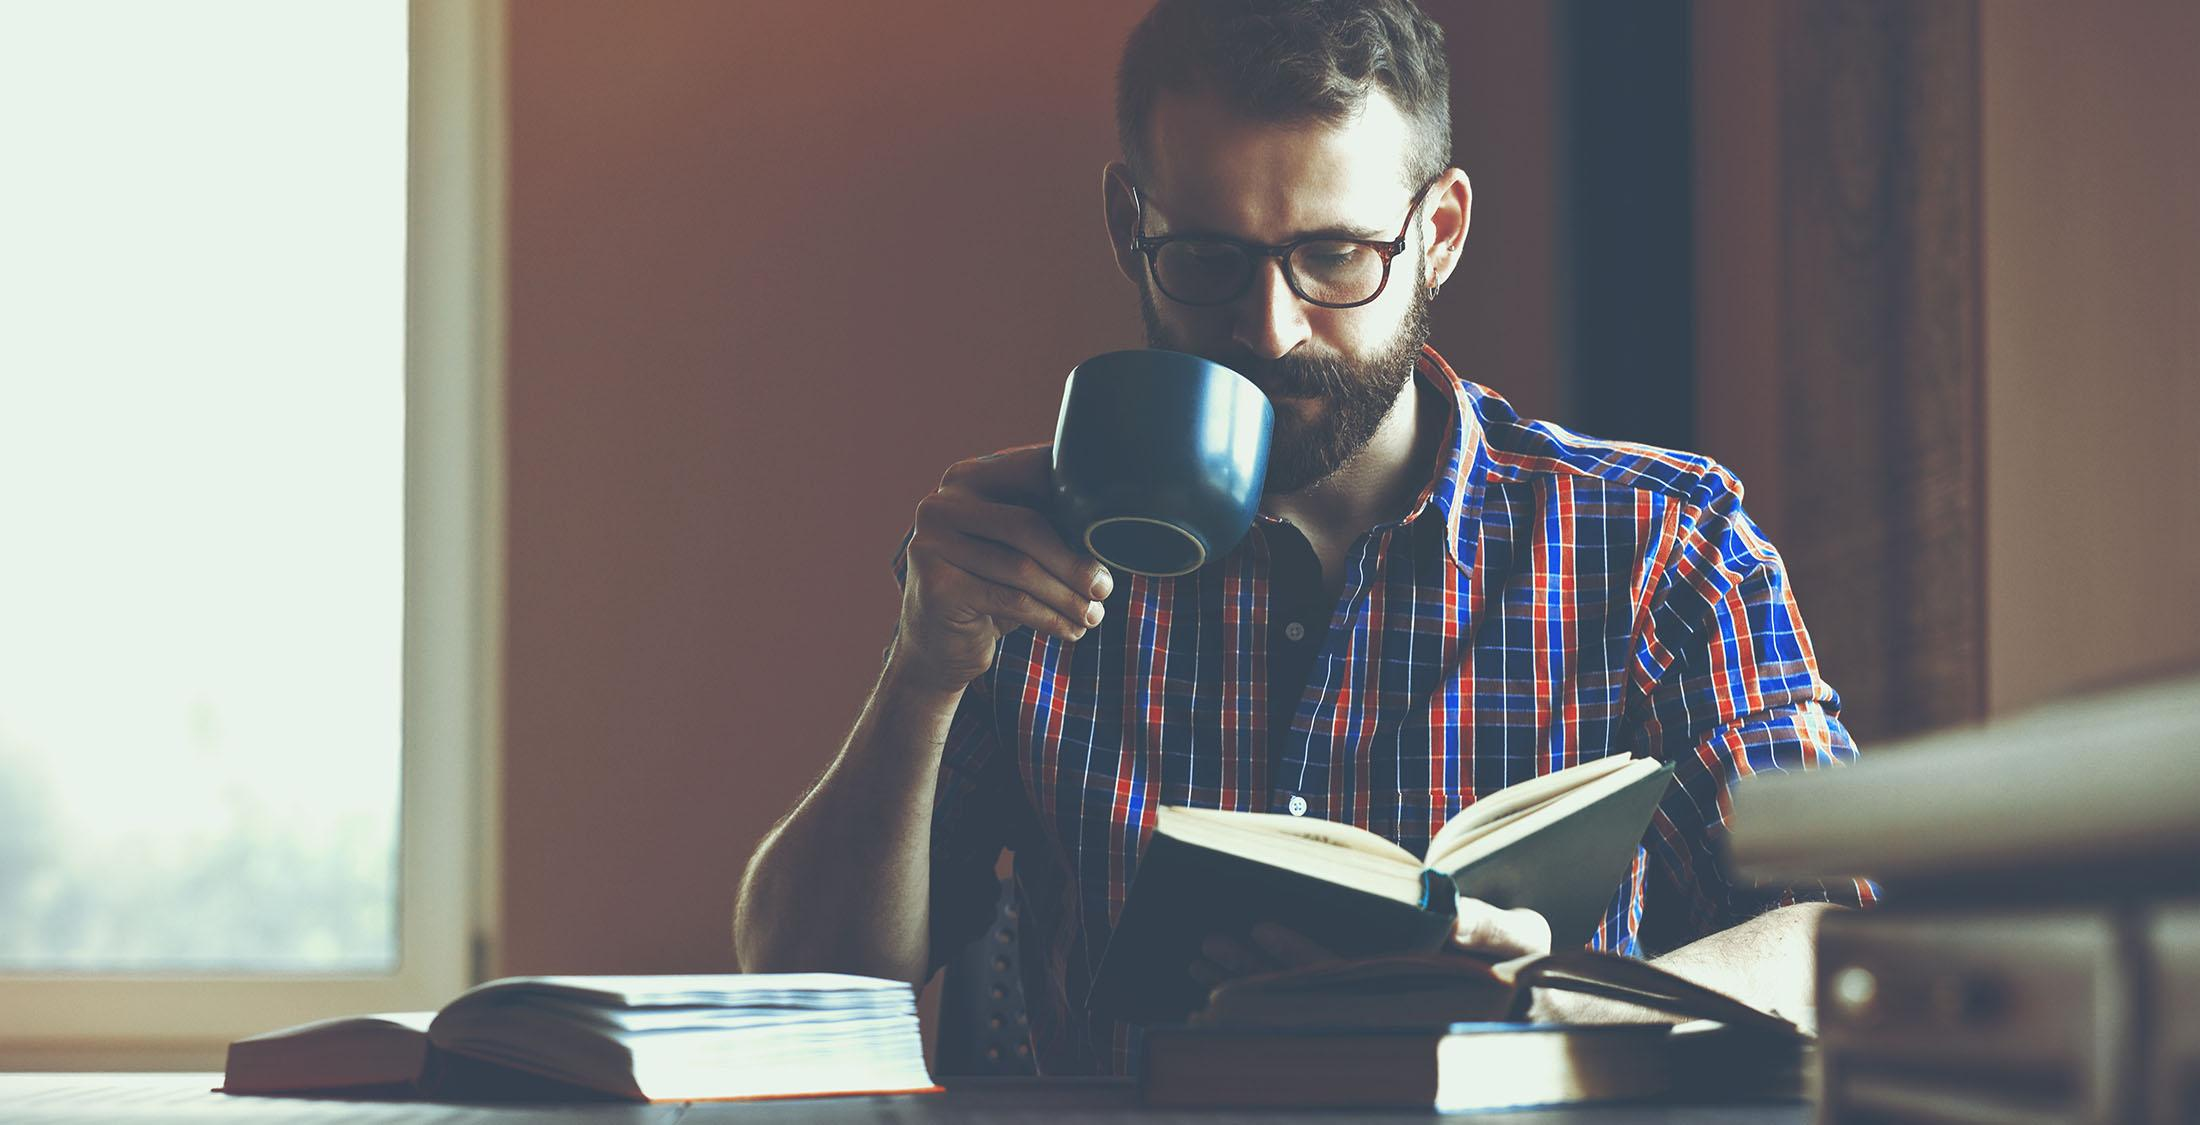 man sipping on coffee and reading a book